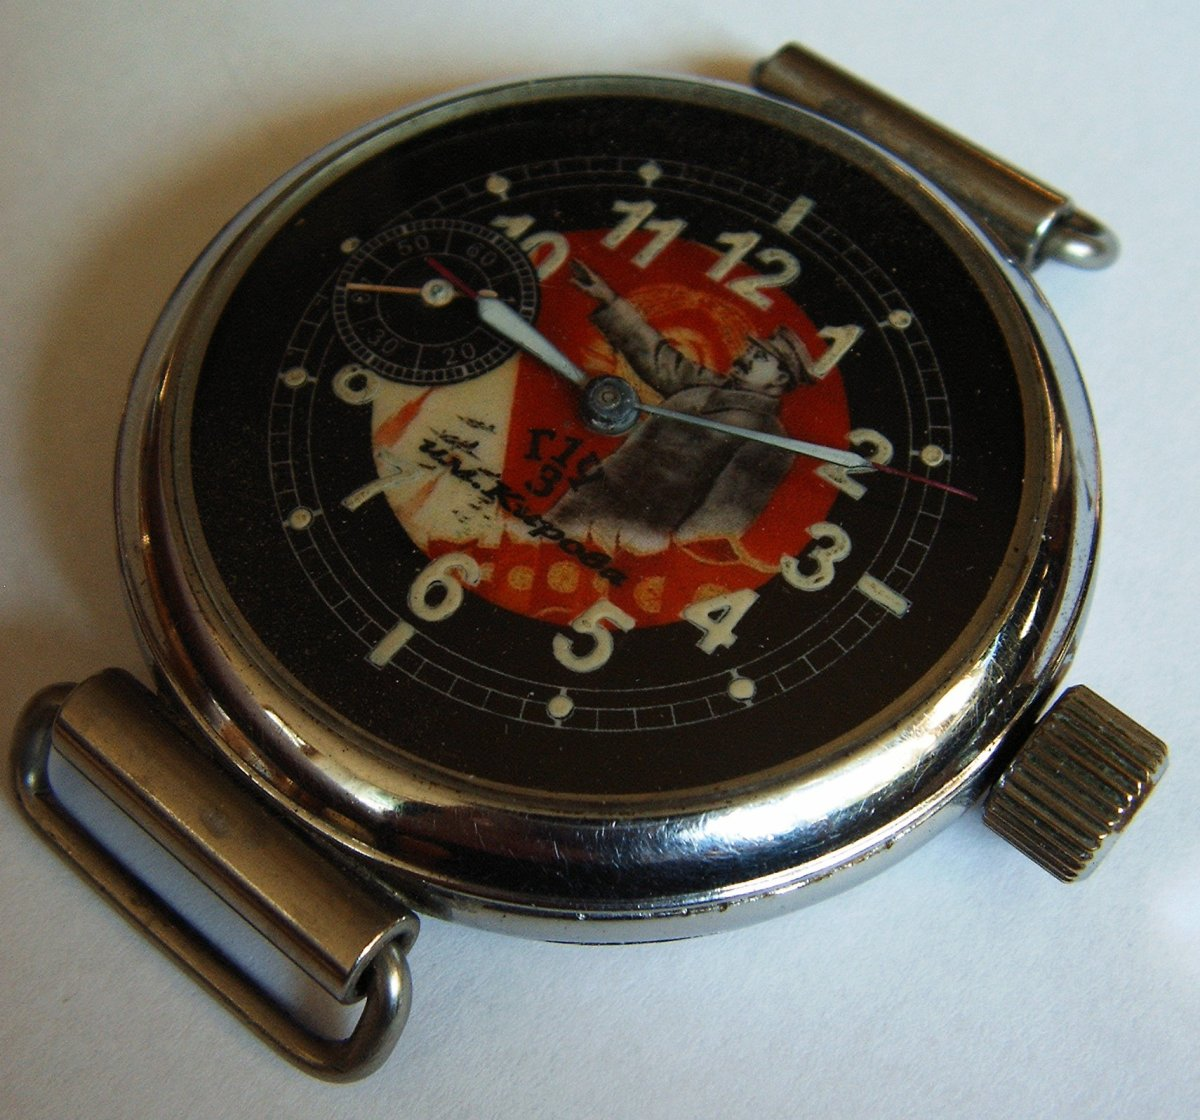 Stalin's strange obsession with promoting the USSR's watchmaking industry perhaps has its roots in Peter the Great's dash for modernity. Photo: Creative Commons